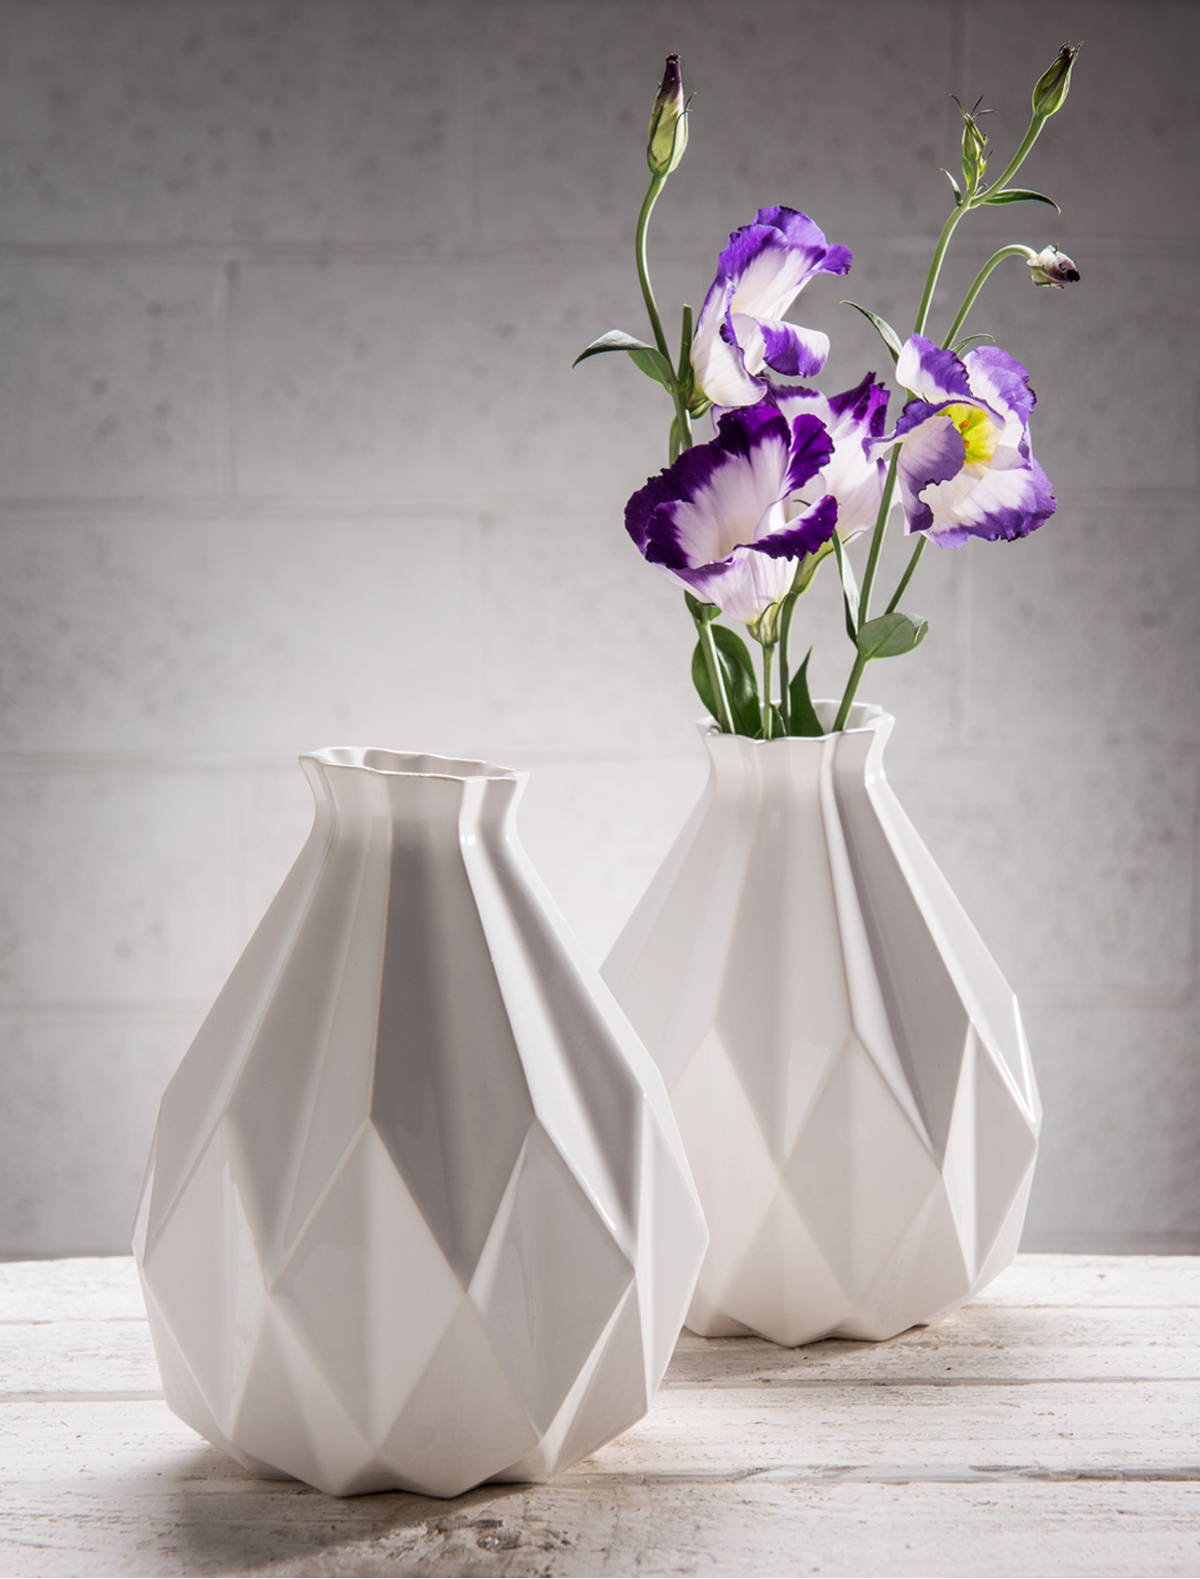 Time Fold Ritual Objects Design